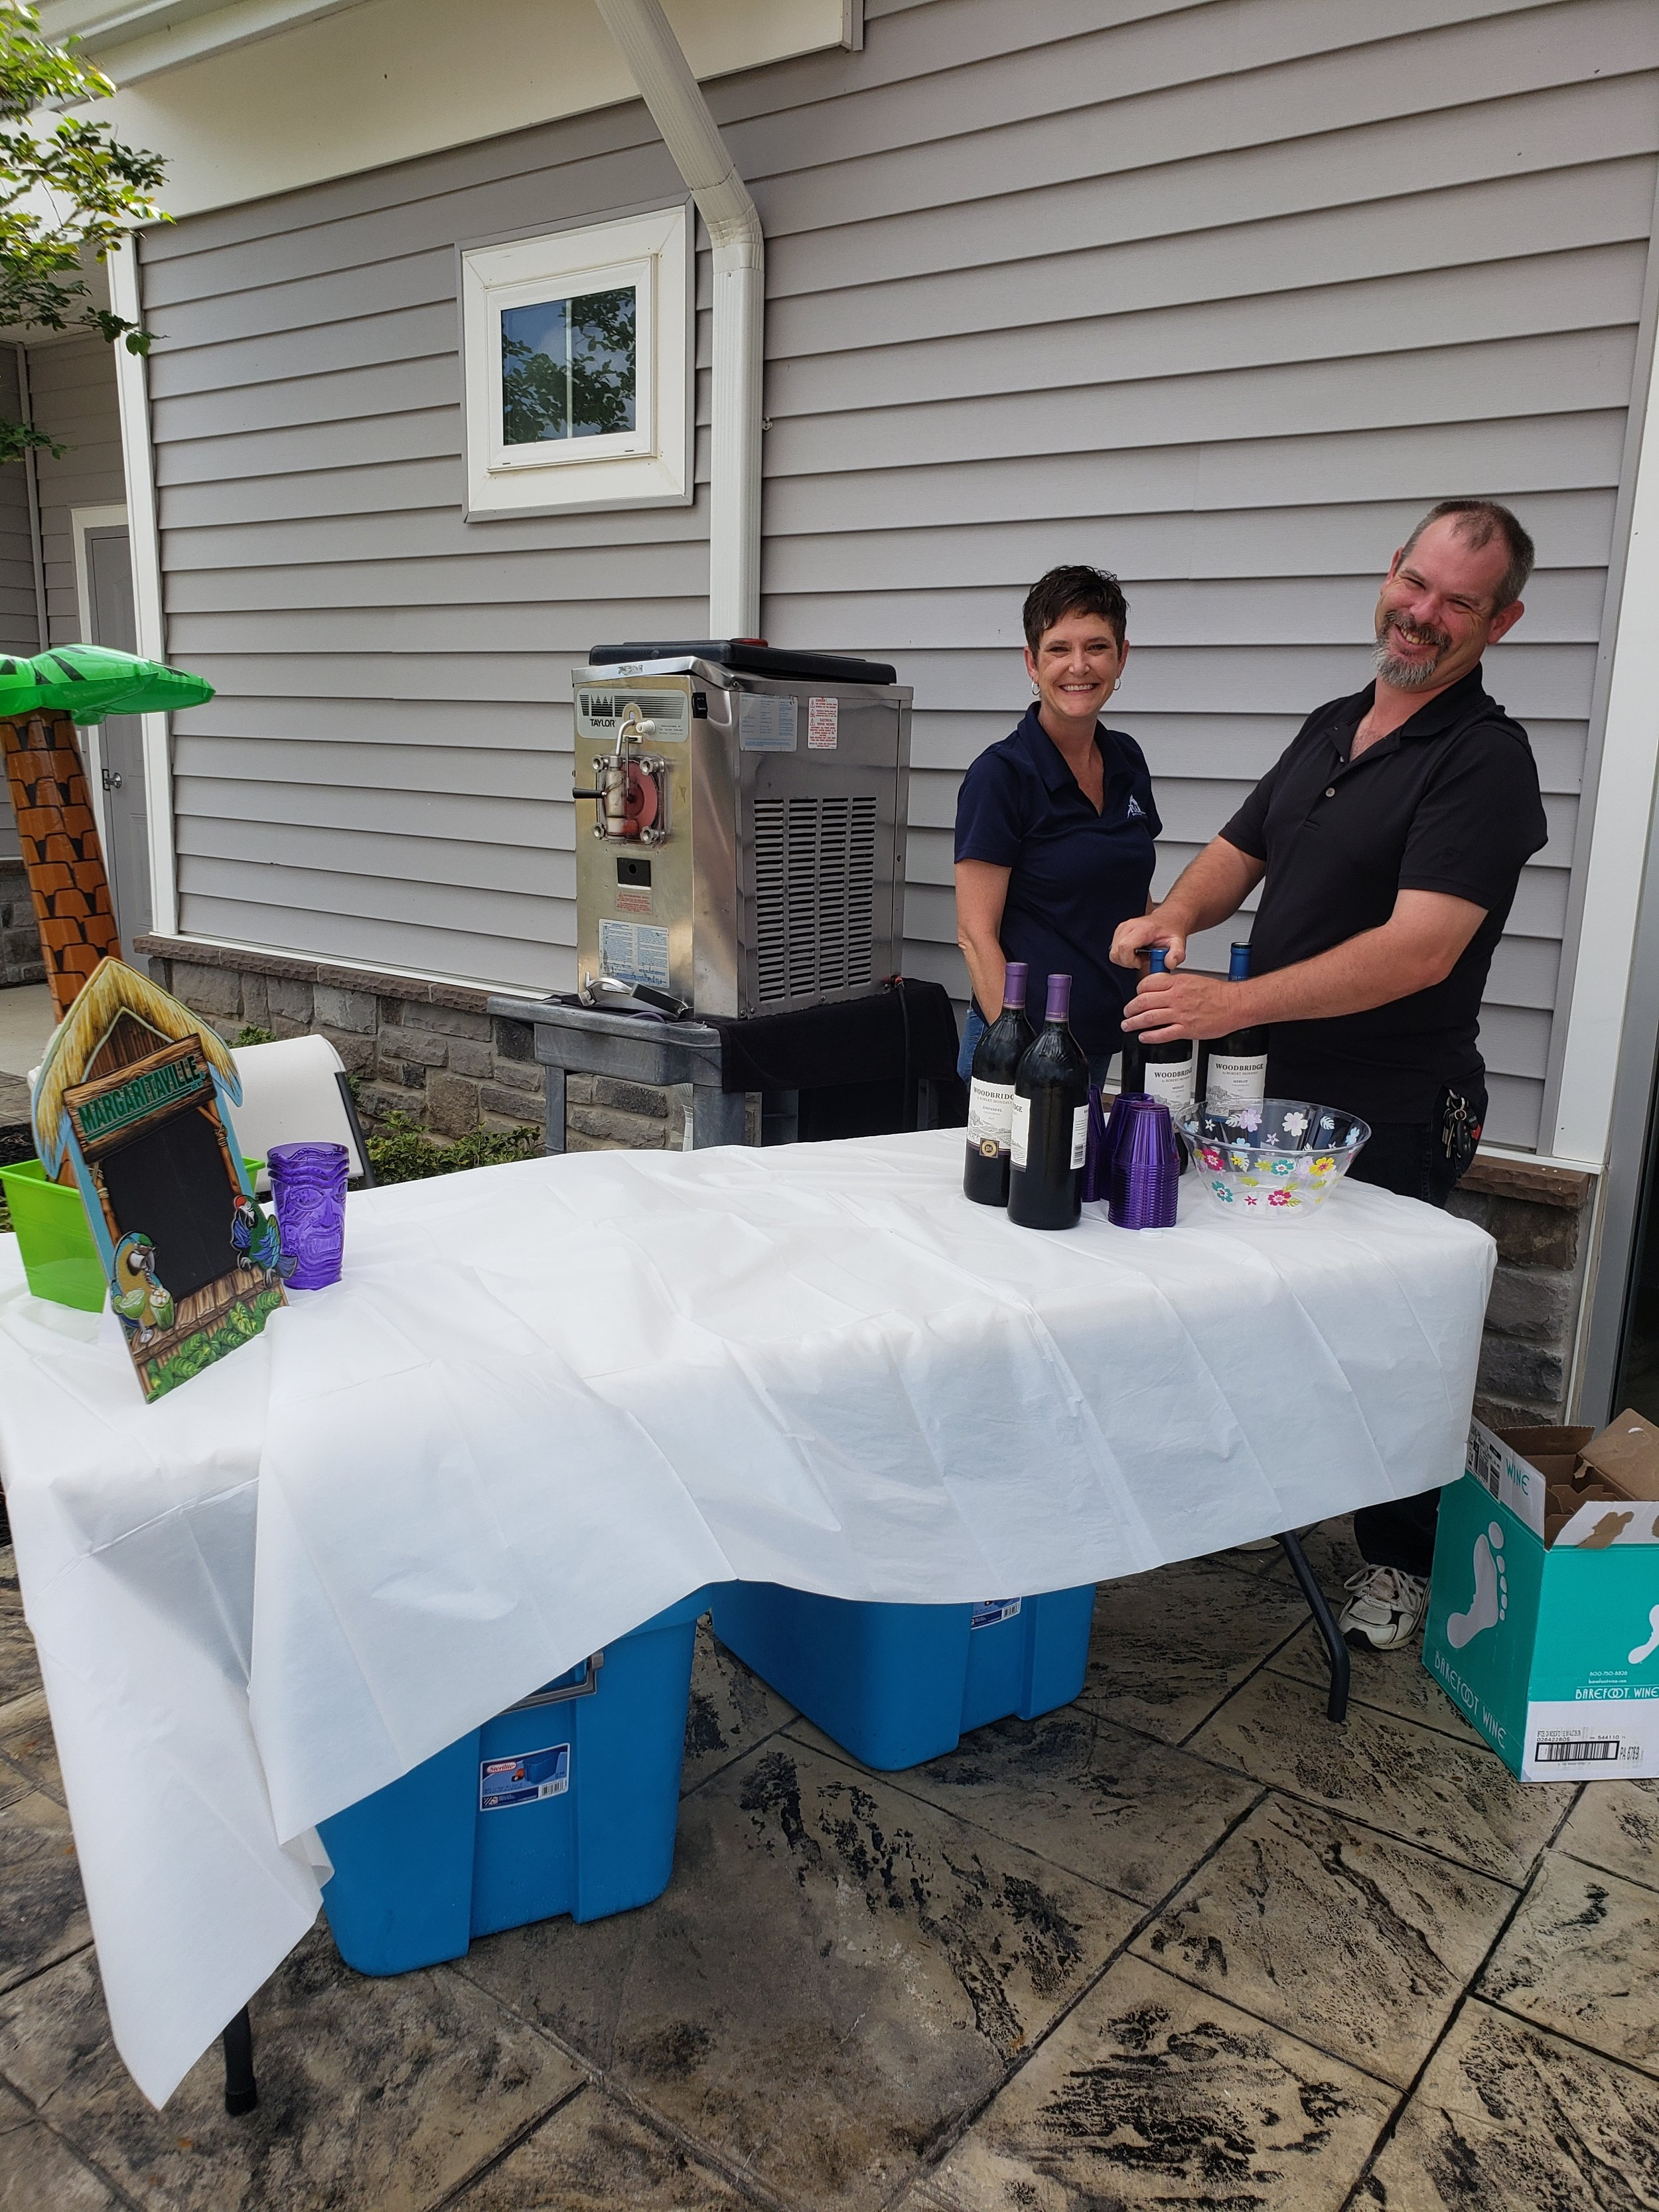 2019 Avanti Apartments Pool Party - Our Team Setting Up